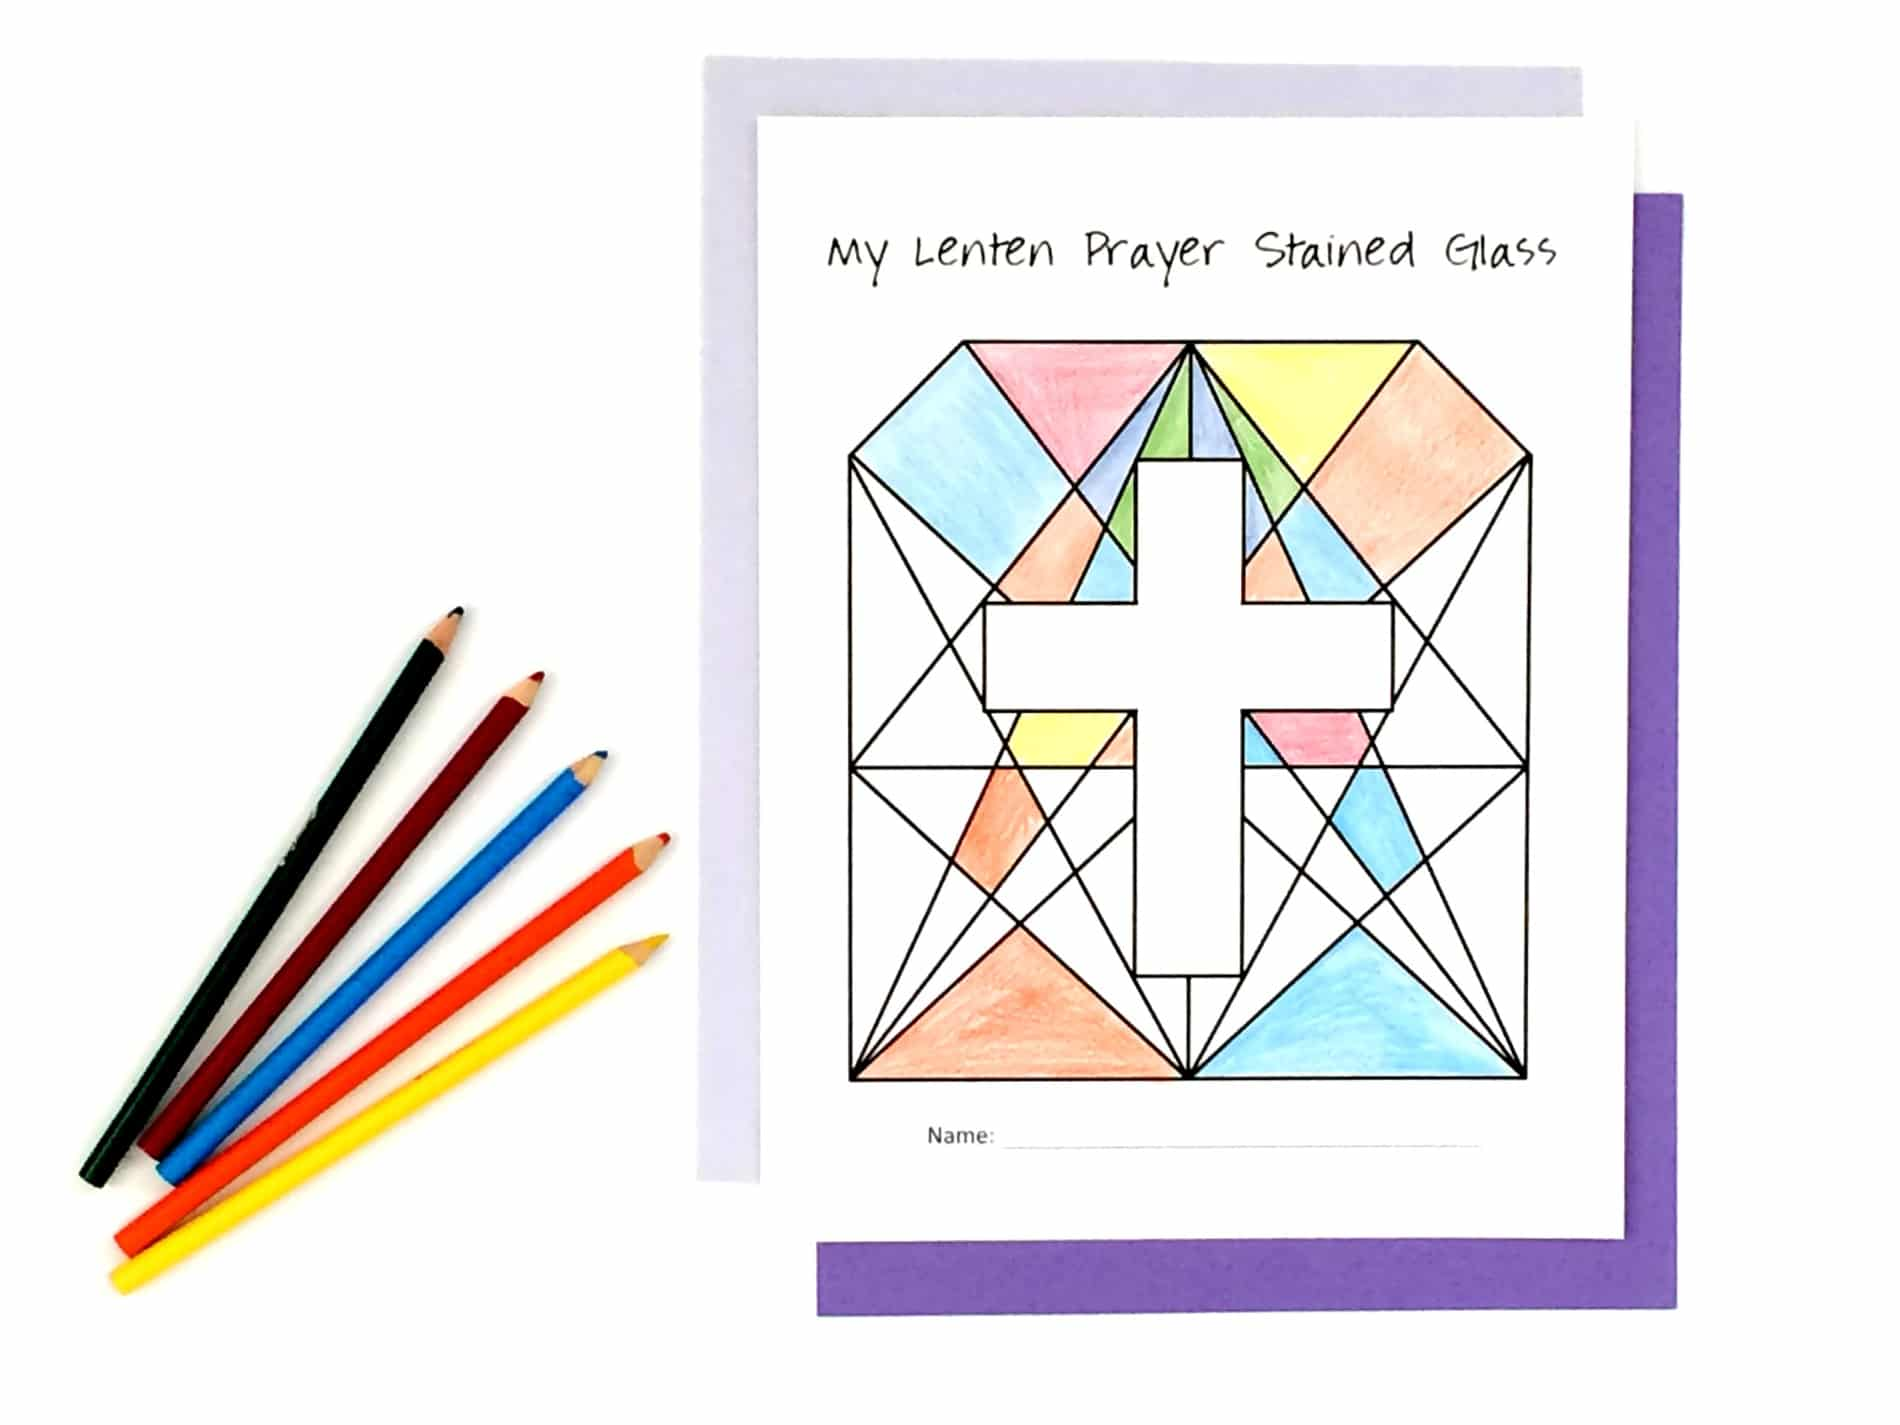 Activity Lenten Prayer Stained Glass Lent Activity For Kids Faith And Fabric